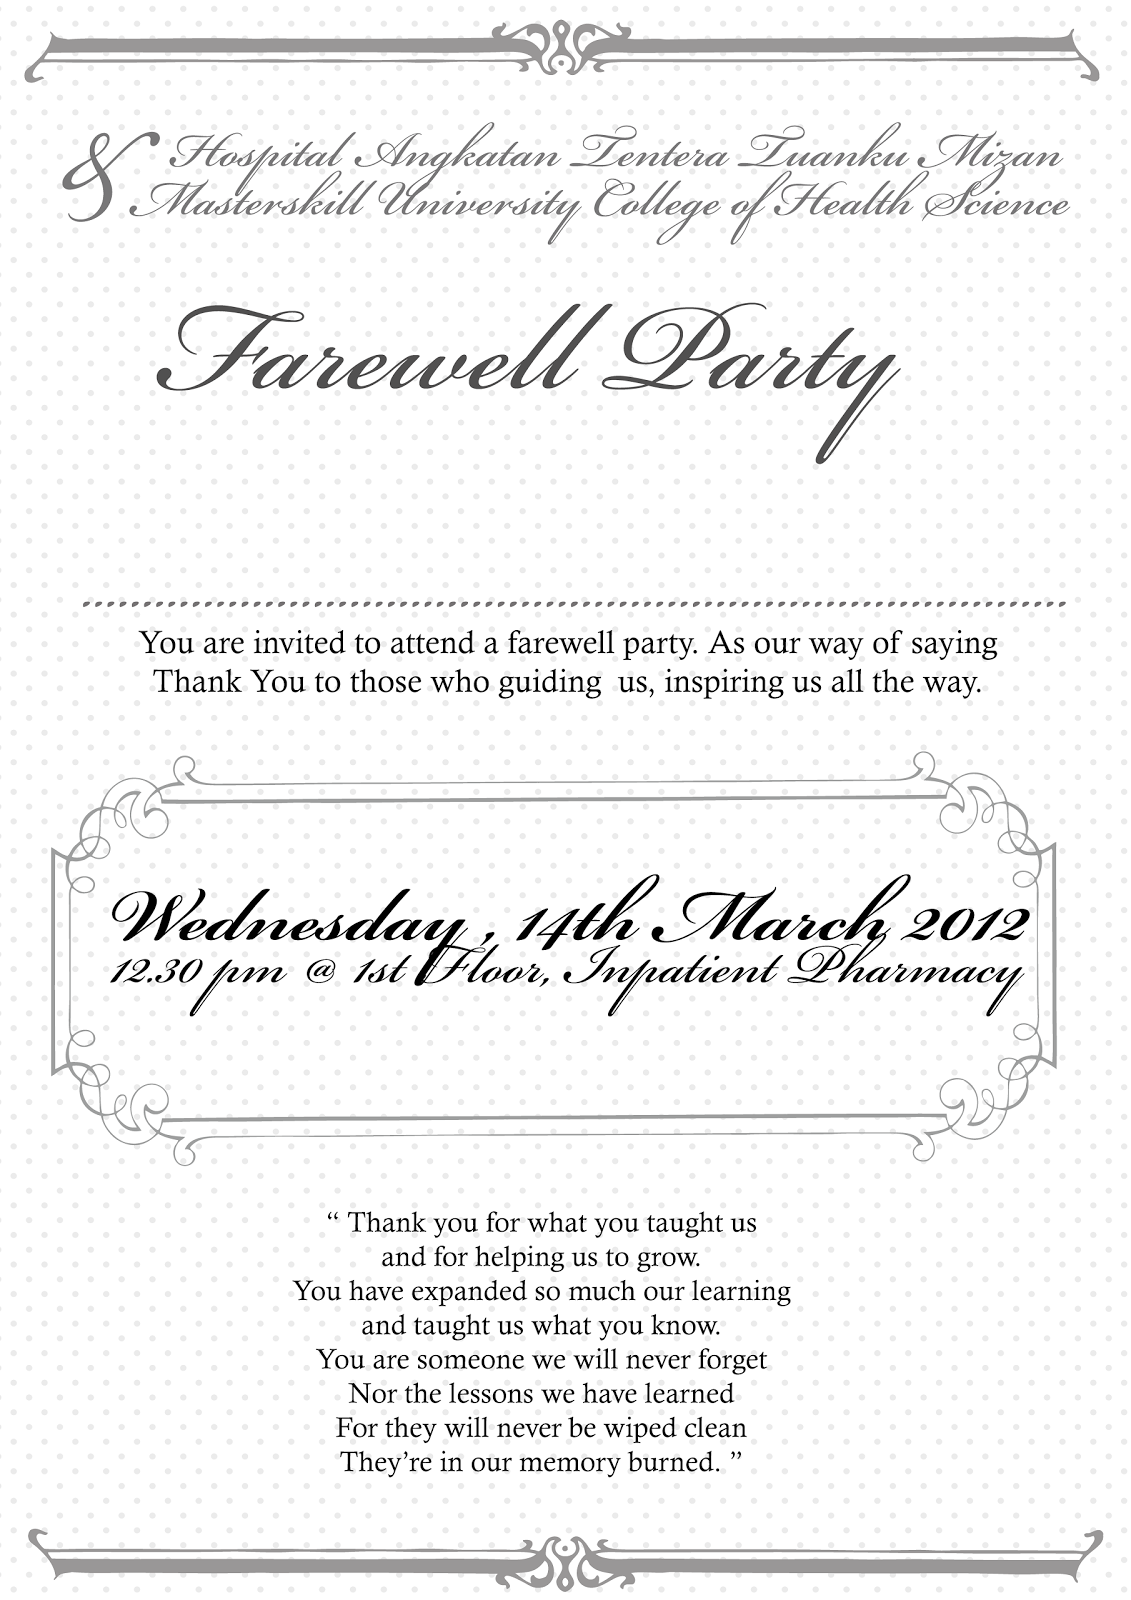 Farewell Party Invitation Wording